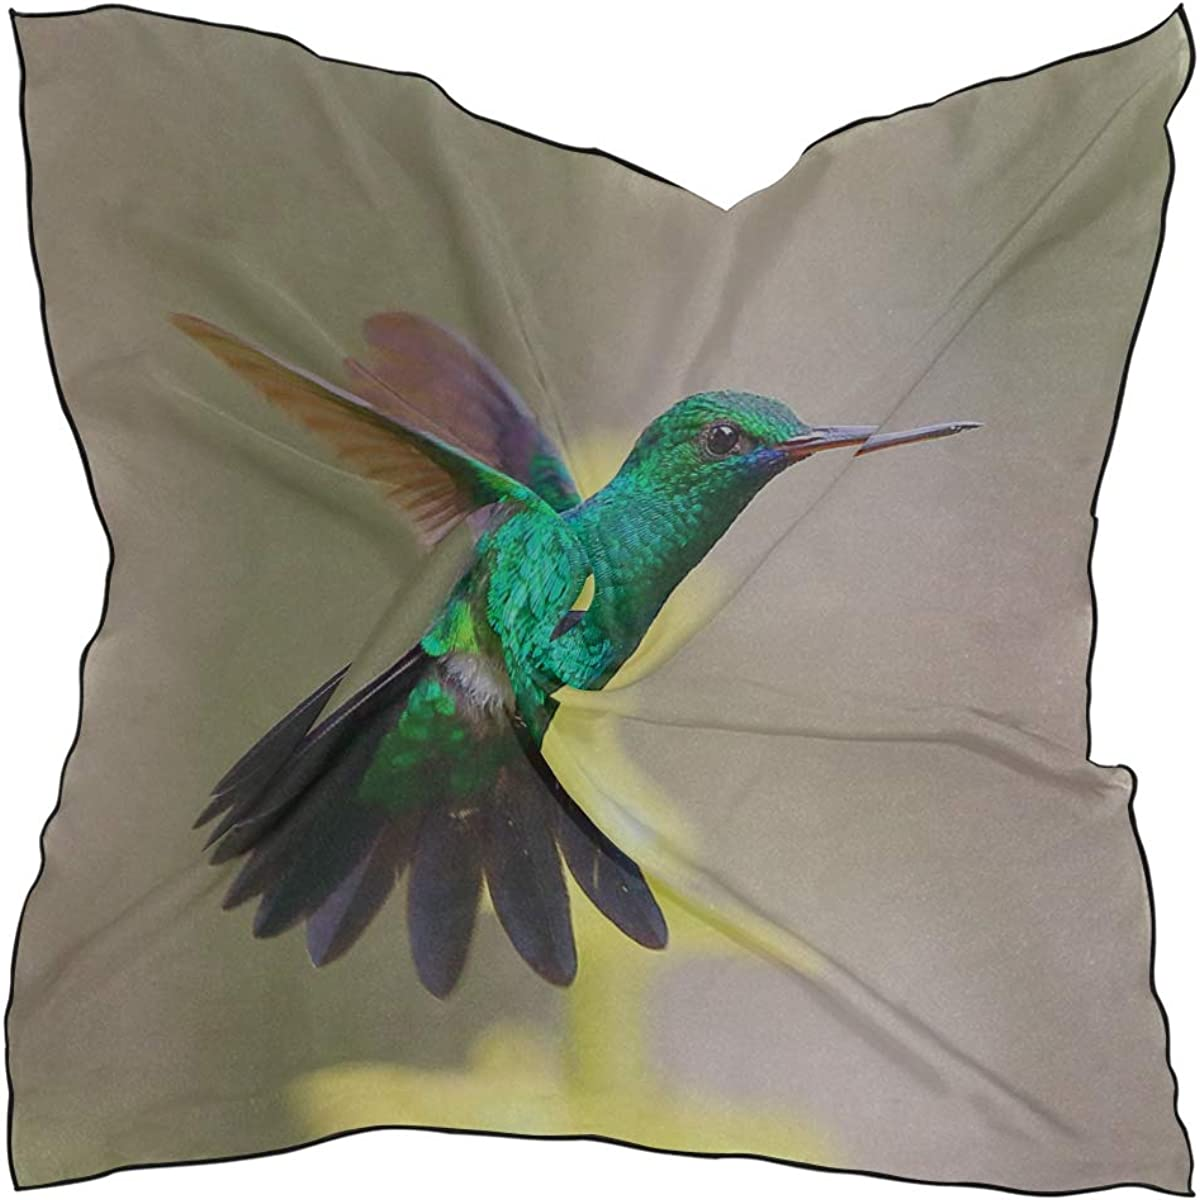 Soft Polyester Silk Bed Head Scarf Fashion Print Hummingbirds Are Sucking Nectar Woman Scarf Scarfs For Girls Scarves Print Multiple Ways Of Wearing Daily Decor